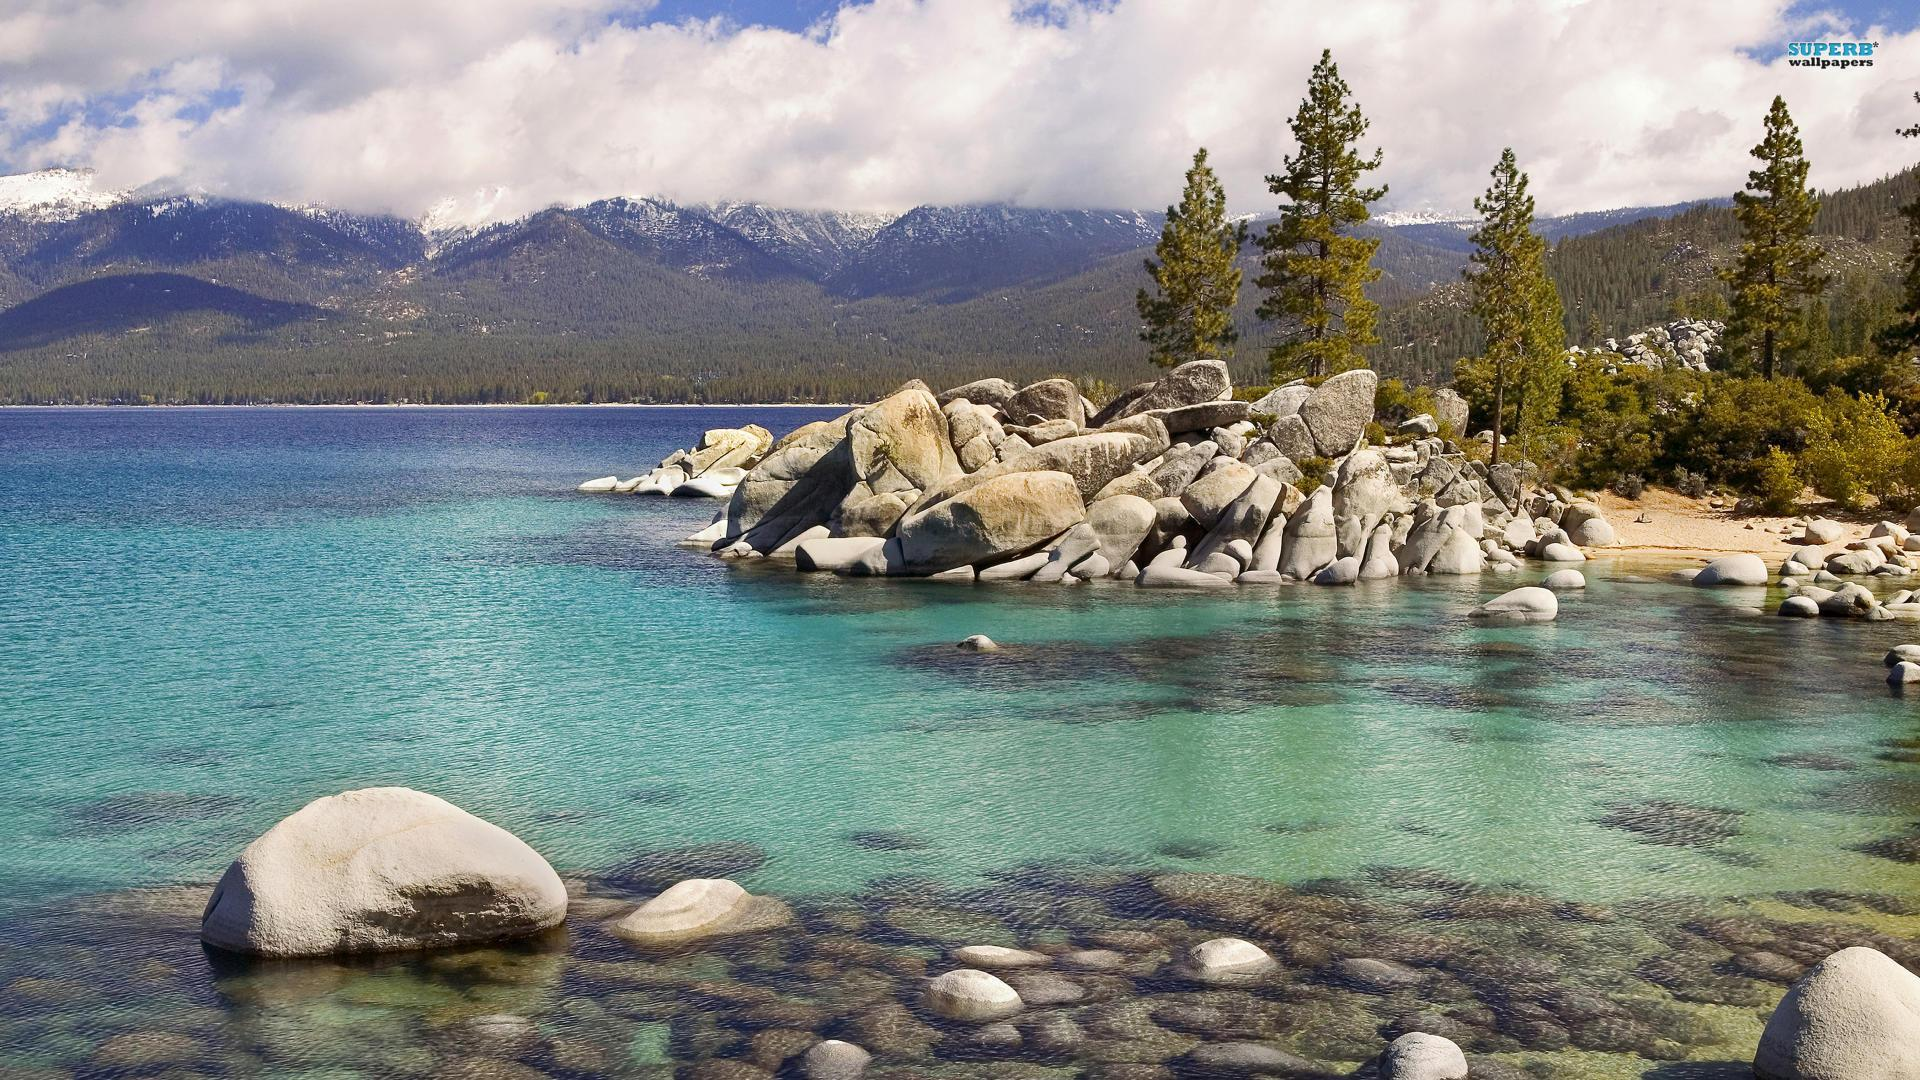 Lake Tahoe wallpaper 1920x1080